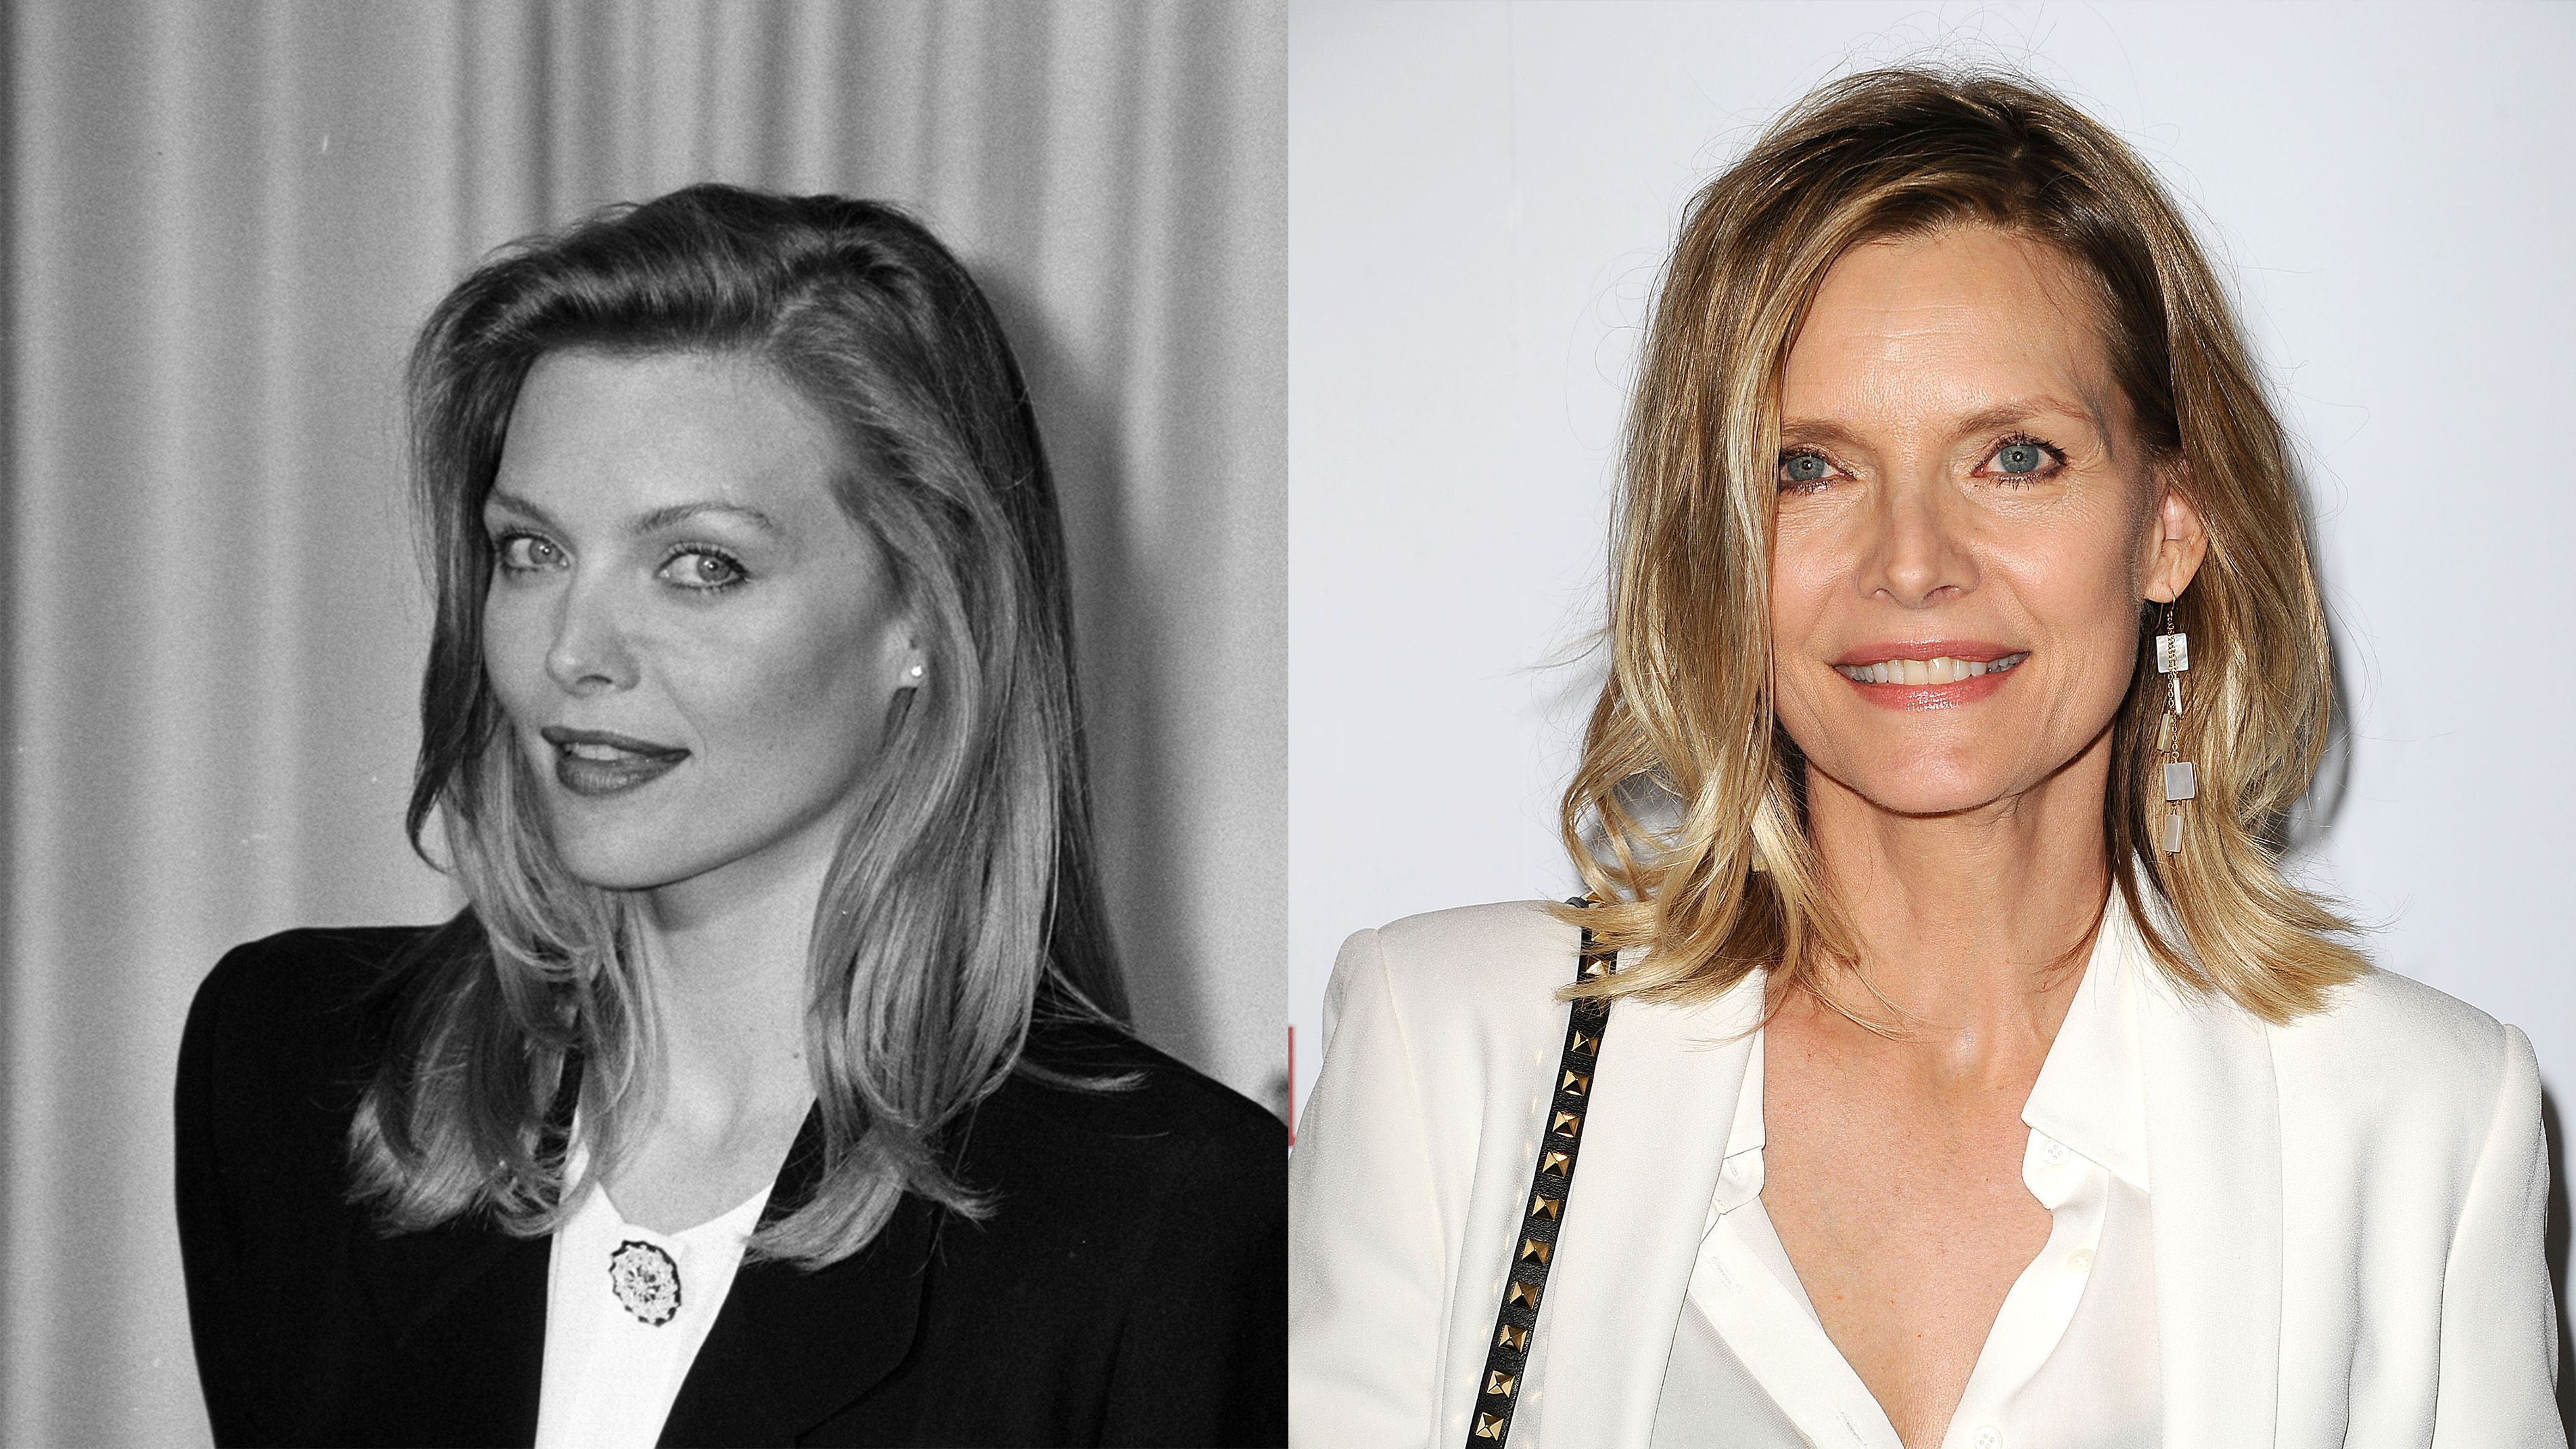 62 Celebrities Who Have Aged Well Aging Celebrities Then And Now